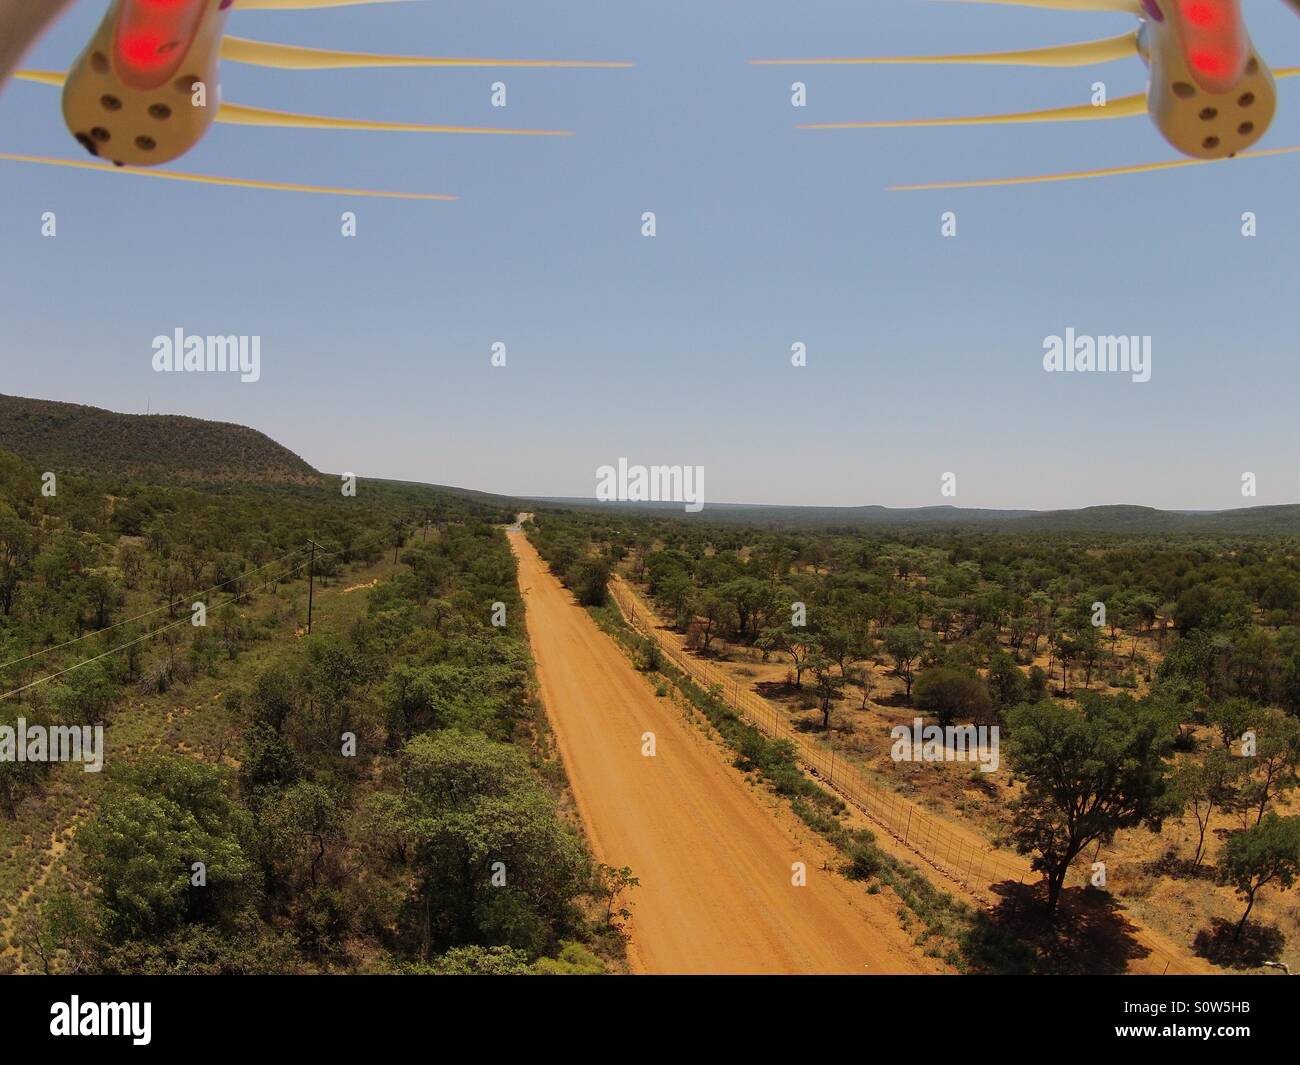 Drone flight over Africa - Stock Image